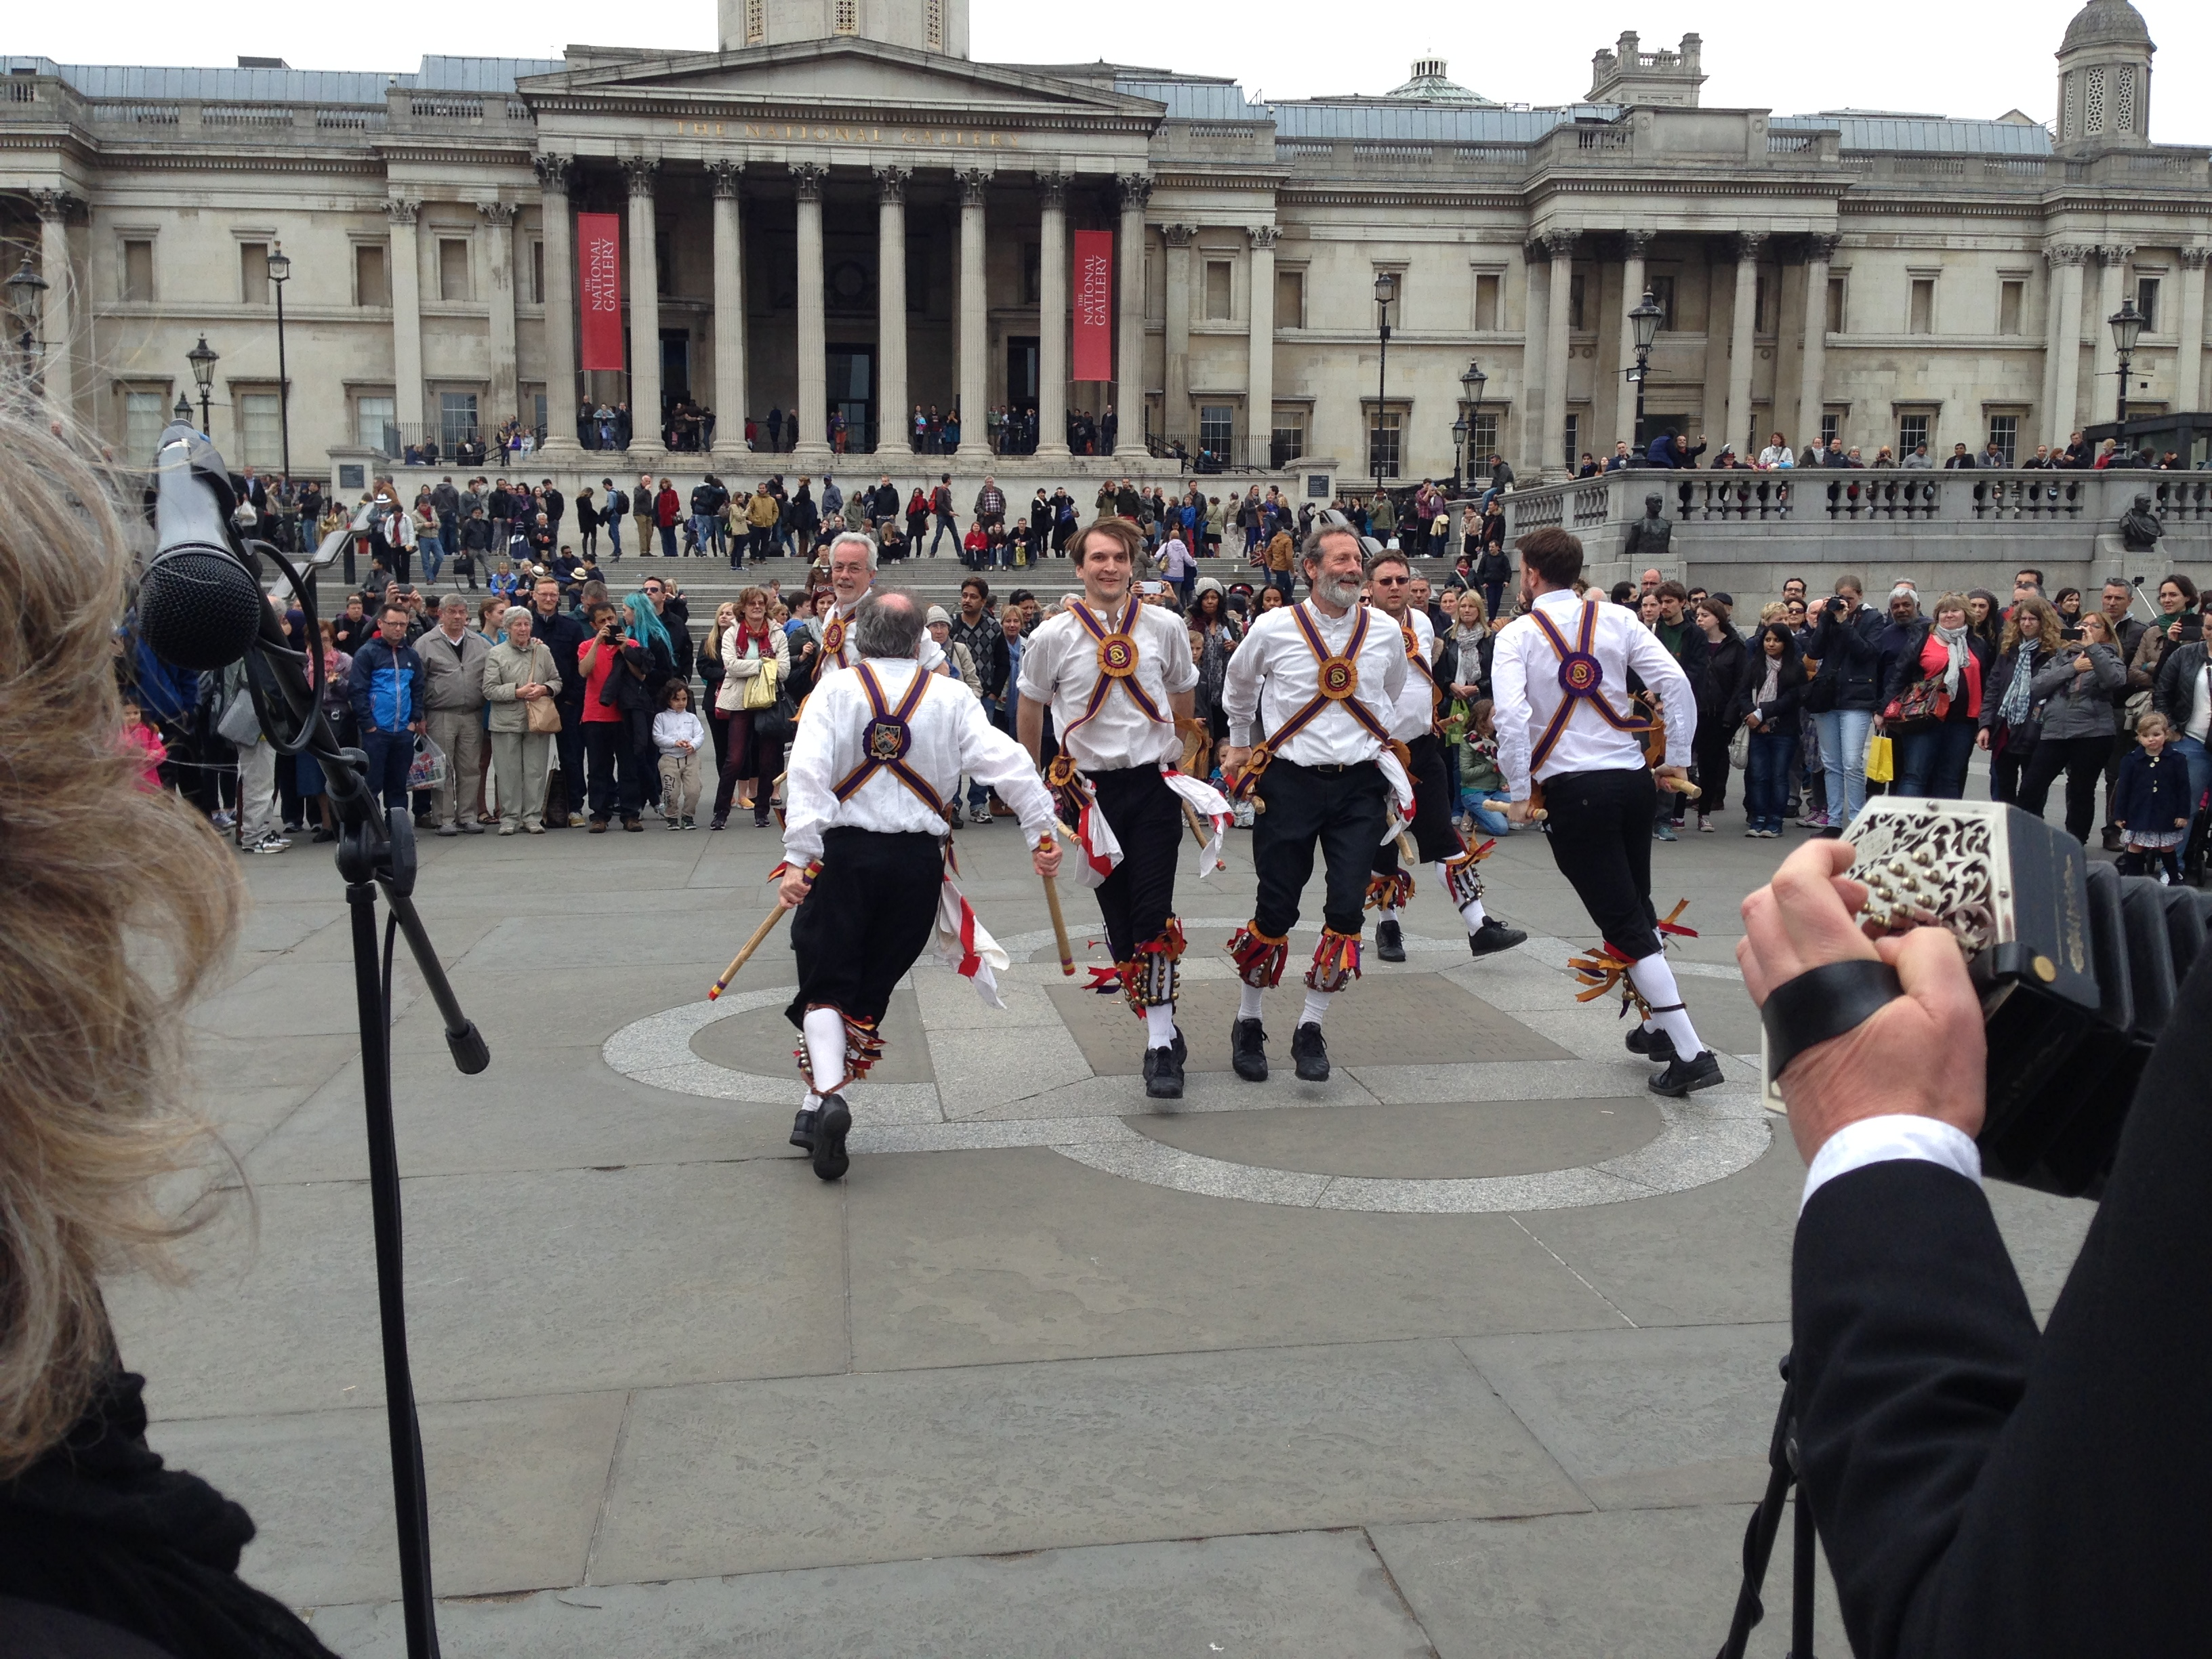 Morris dancing Trafalgar Square, London